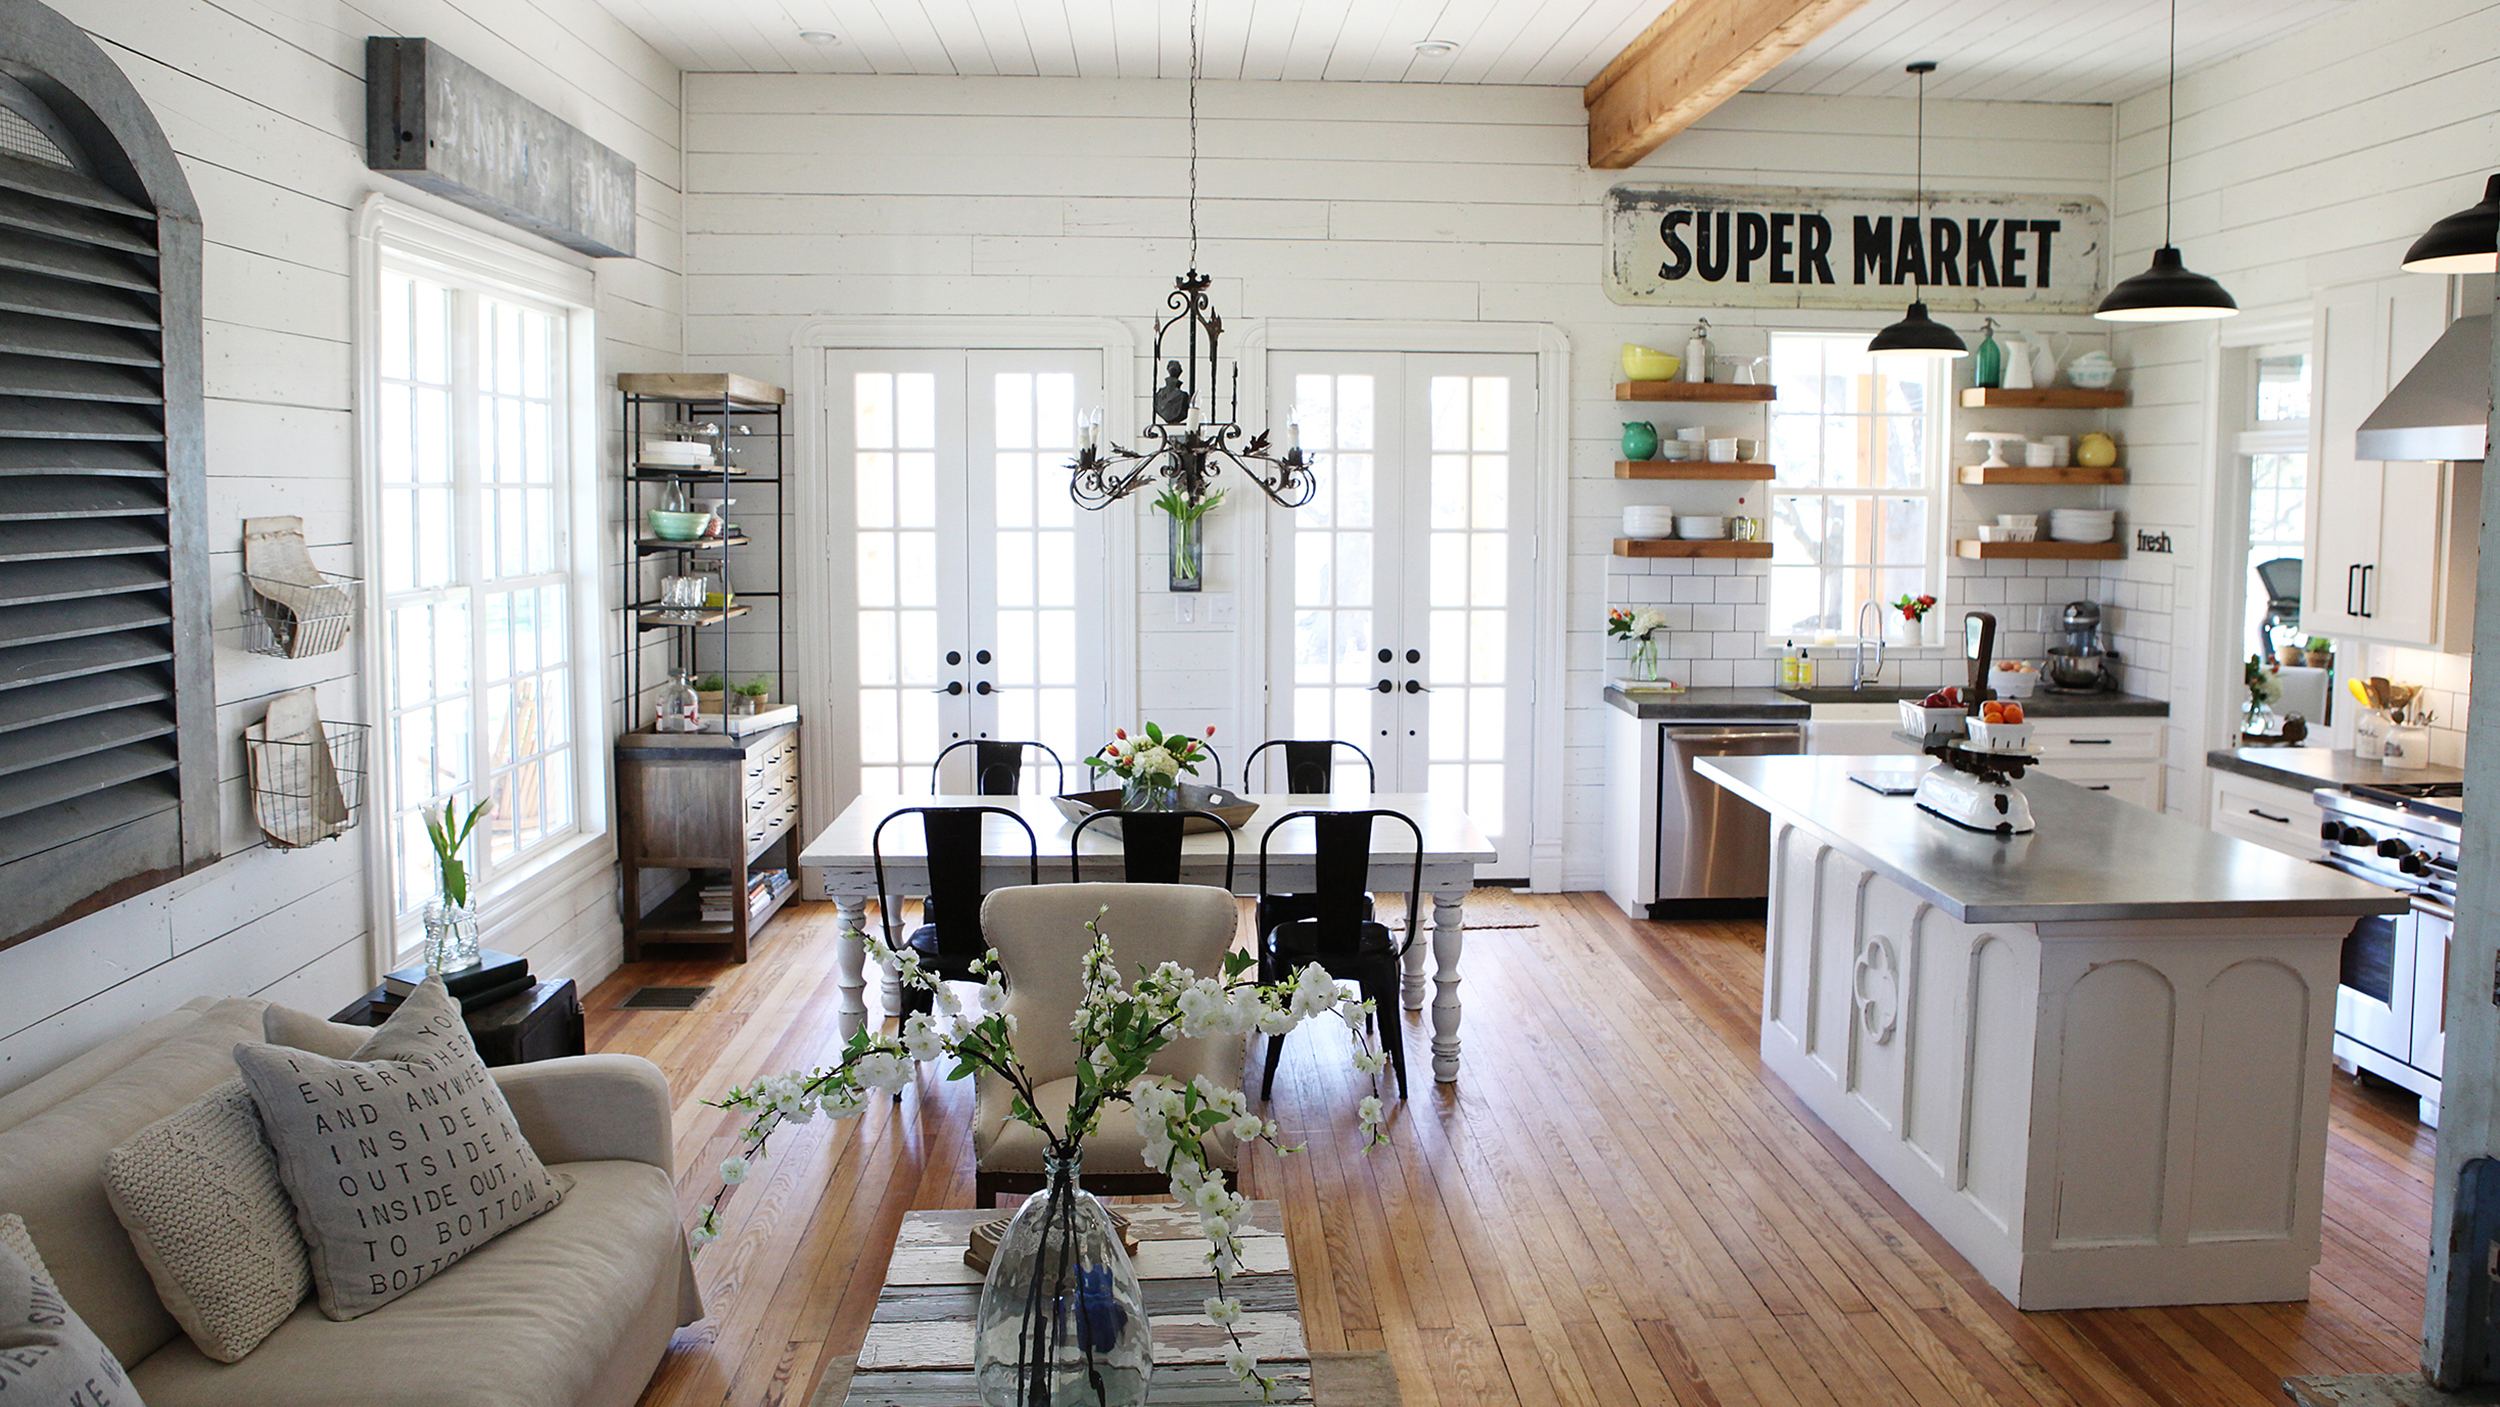 Chip And Joanna Gaines 'Fixer Upper' Home Tour In Waco Texas